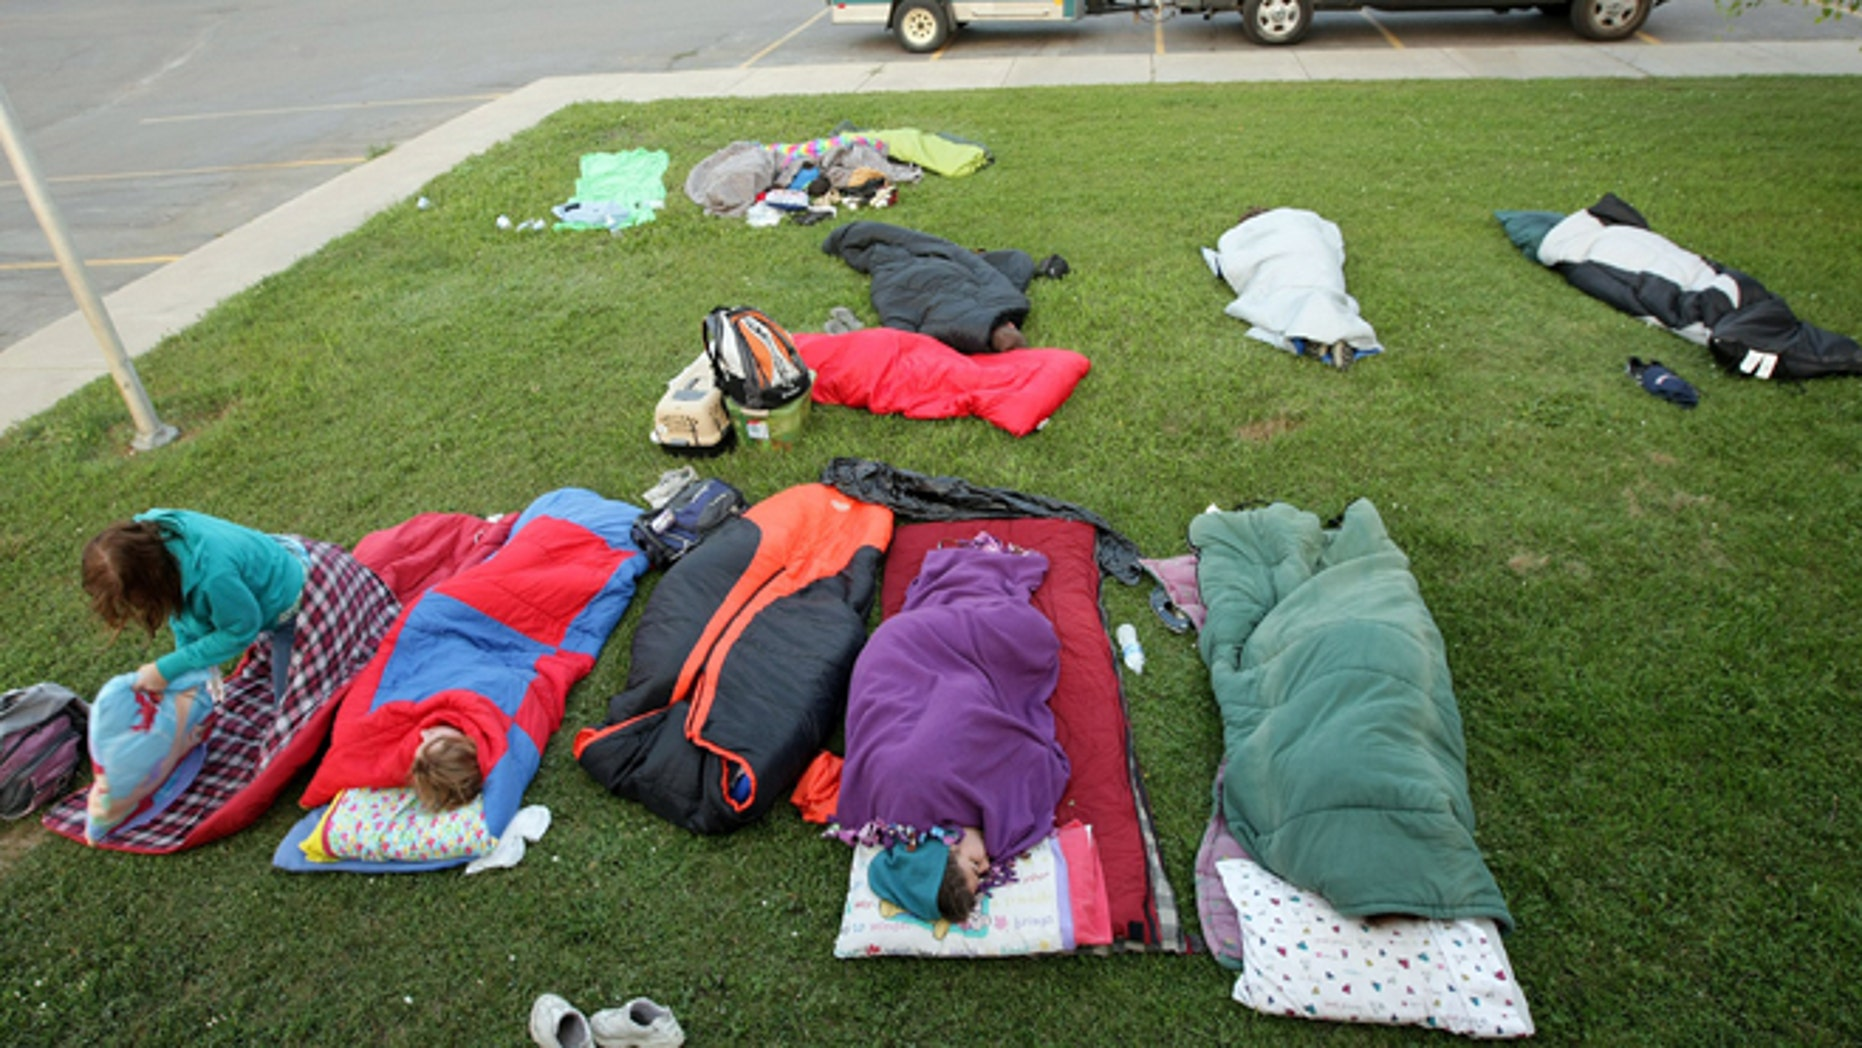 Aug. 3, 2012: A church group from Indiana sleeps outside the Saint Labre Mission after evacuating a bible school at the Morning Star Baptist Church, fleeing the fire in Lame Deer, Mont.